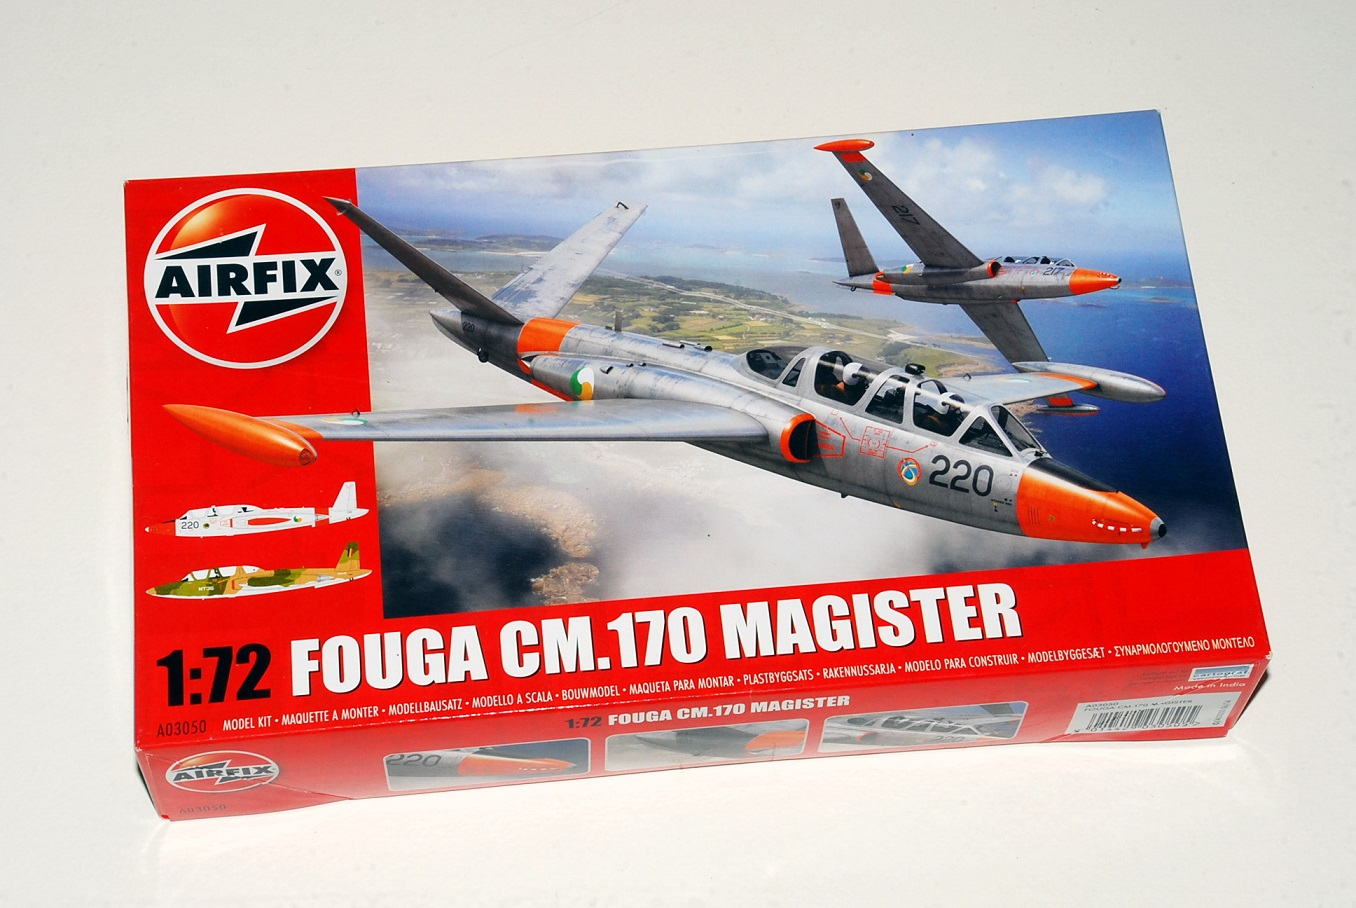 Fouga Magister, Airfix 1/72 (kit No. A03050)